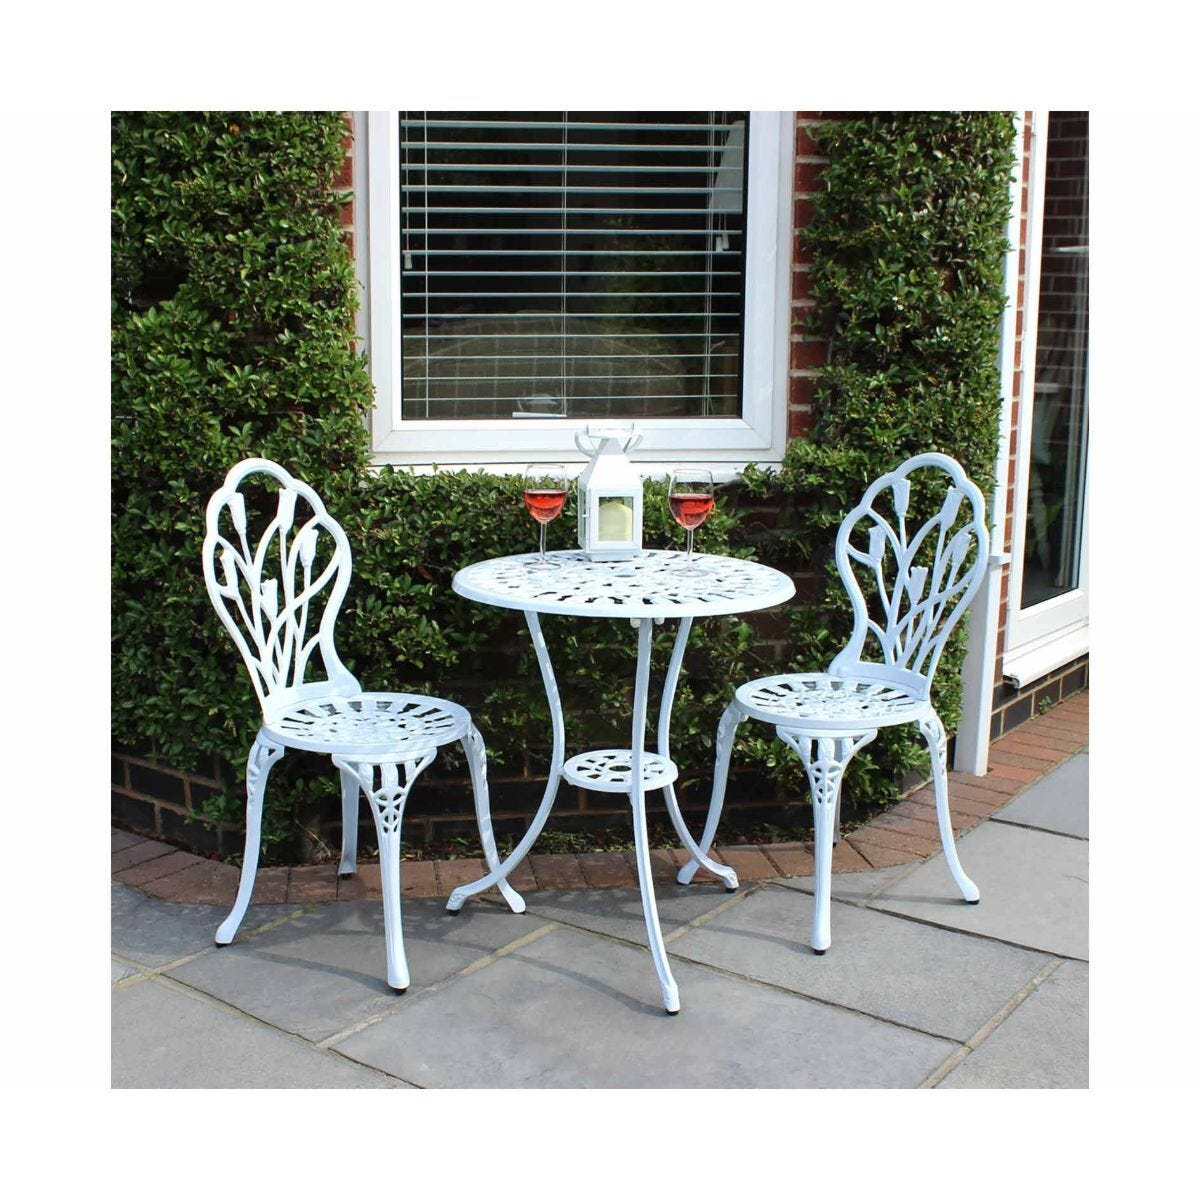 Charles Bentley Cast Aluminium Tulip Bistro Table and 2 Chairs Set